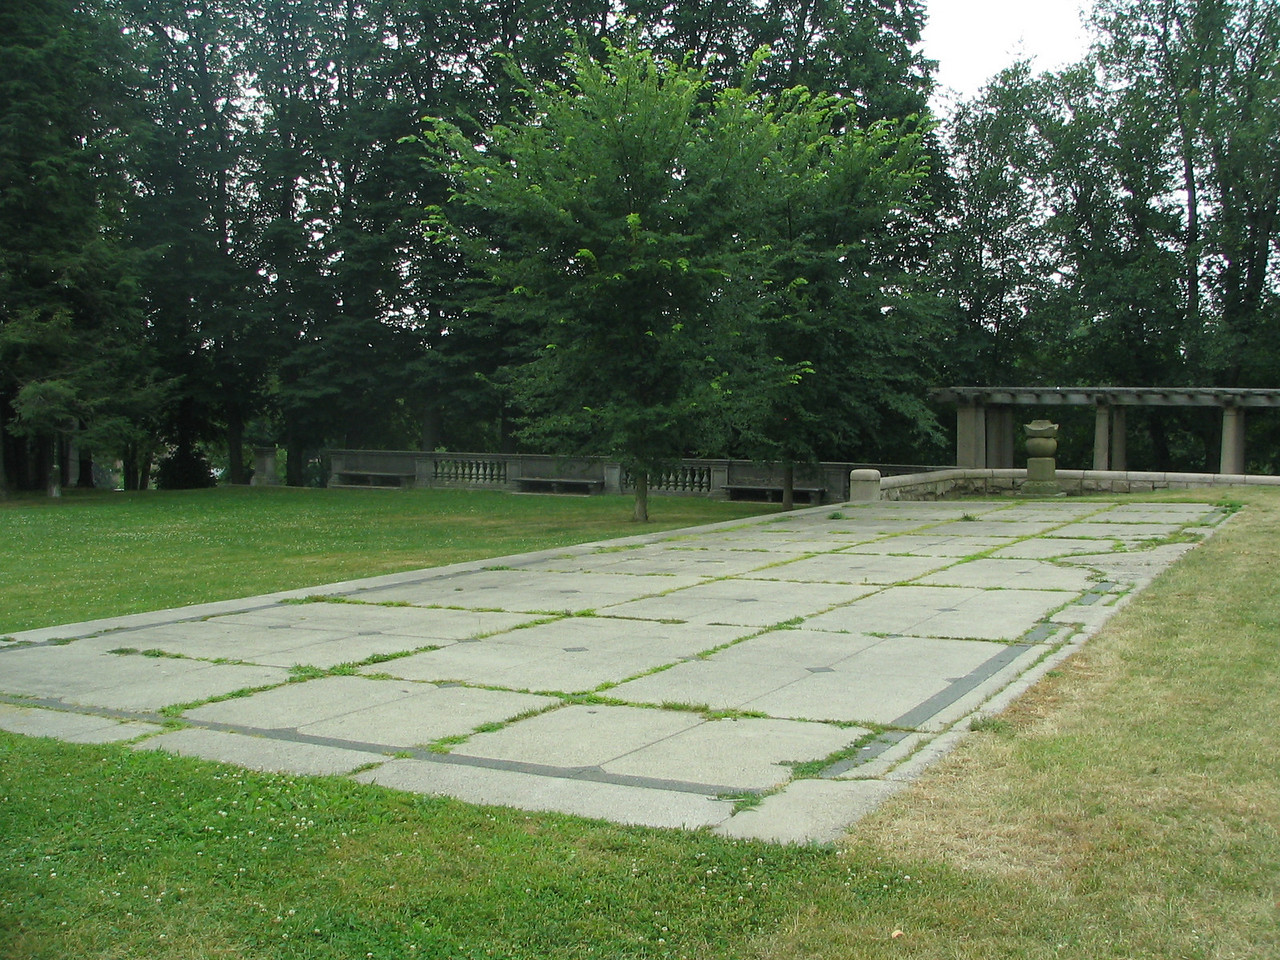 Terrace. The former terrace of the main residence. The house would have sat immediately to the right. The bowling green on the left. You can still make out the pattern of the fountain that abutted the house. Many of Mr. Anderson's prized bansai trees were displayed here.